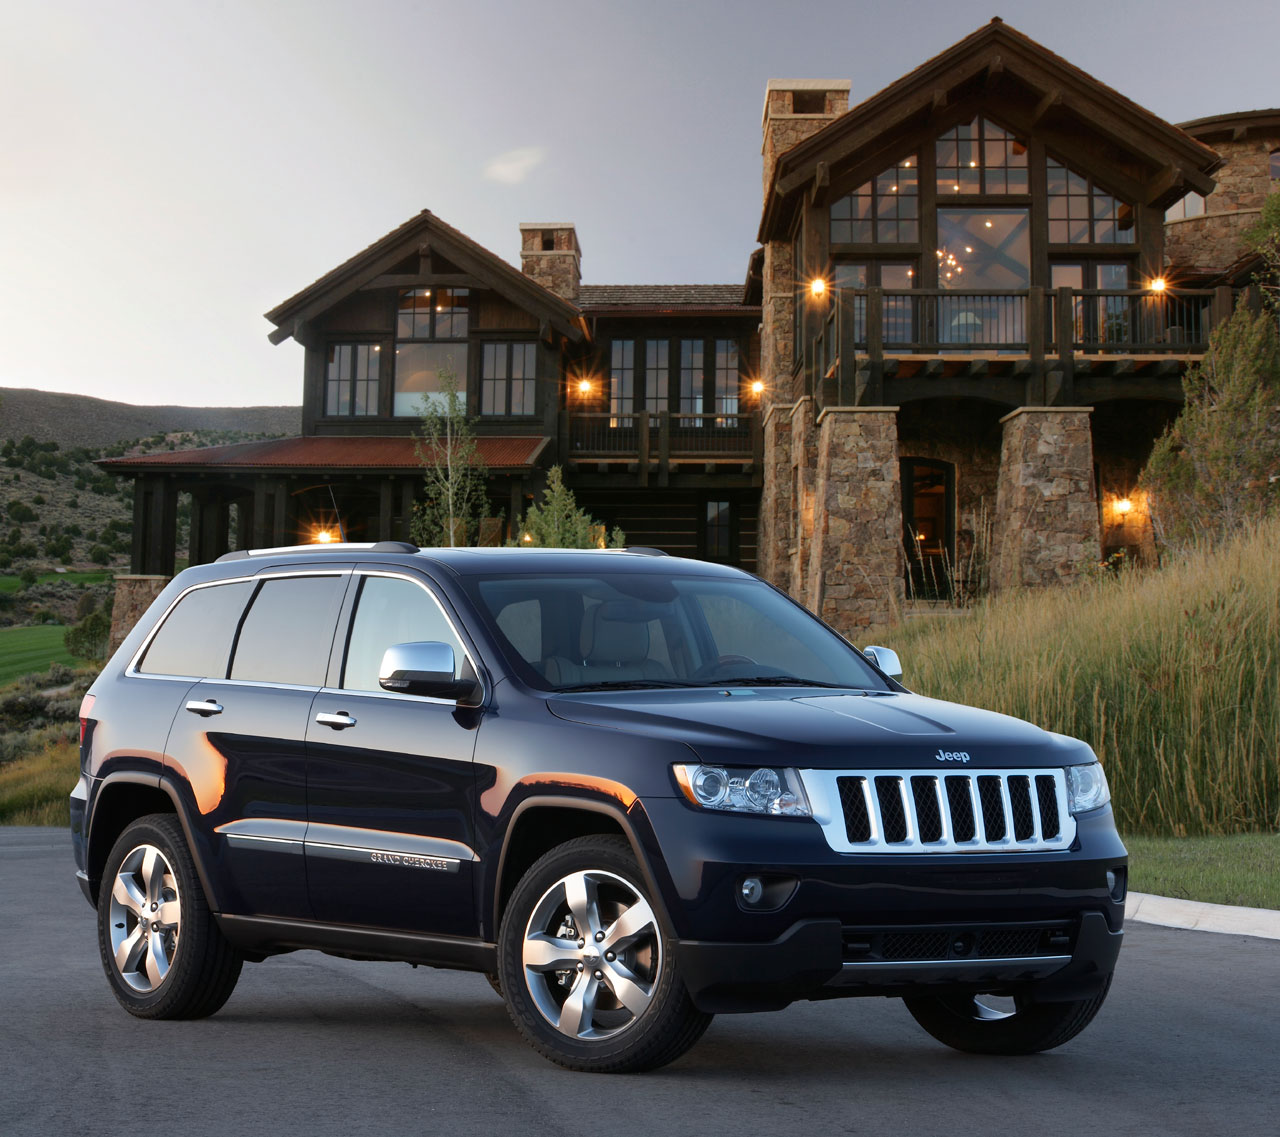 2011 wl jeep grand cherokee page 22. Black Bedroom Furniture Sets. Home Design Ideas